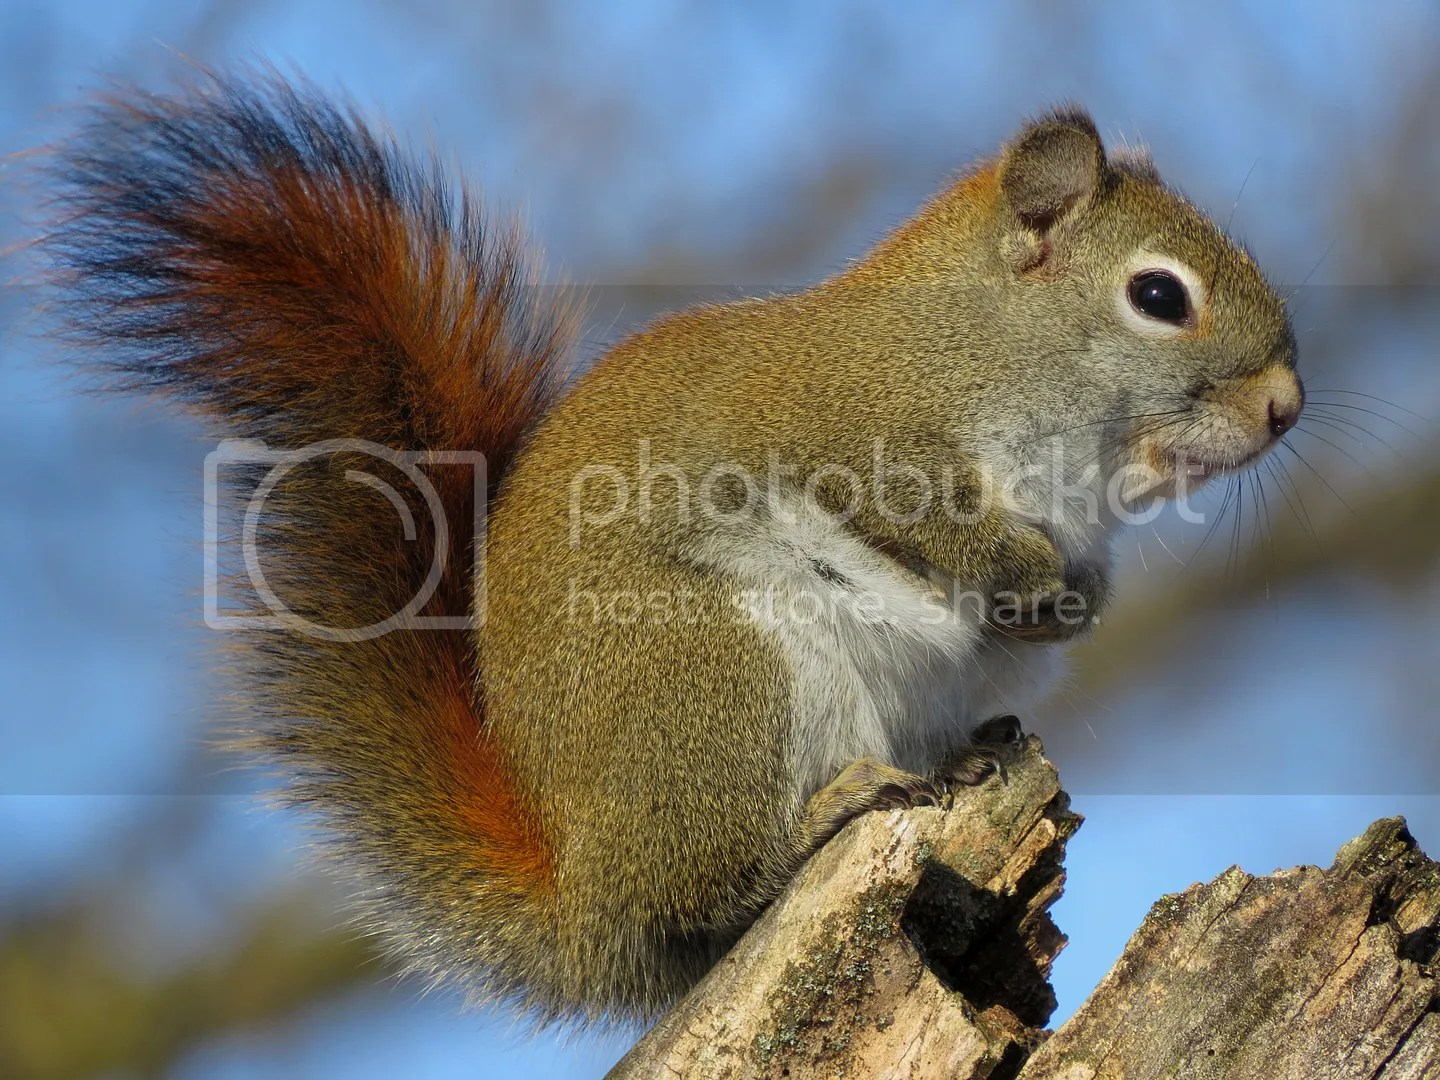 Winter Red Squirrel photo IMG_7290_zps3eec3725.jpg